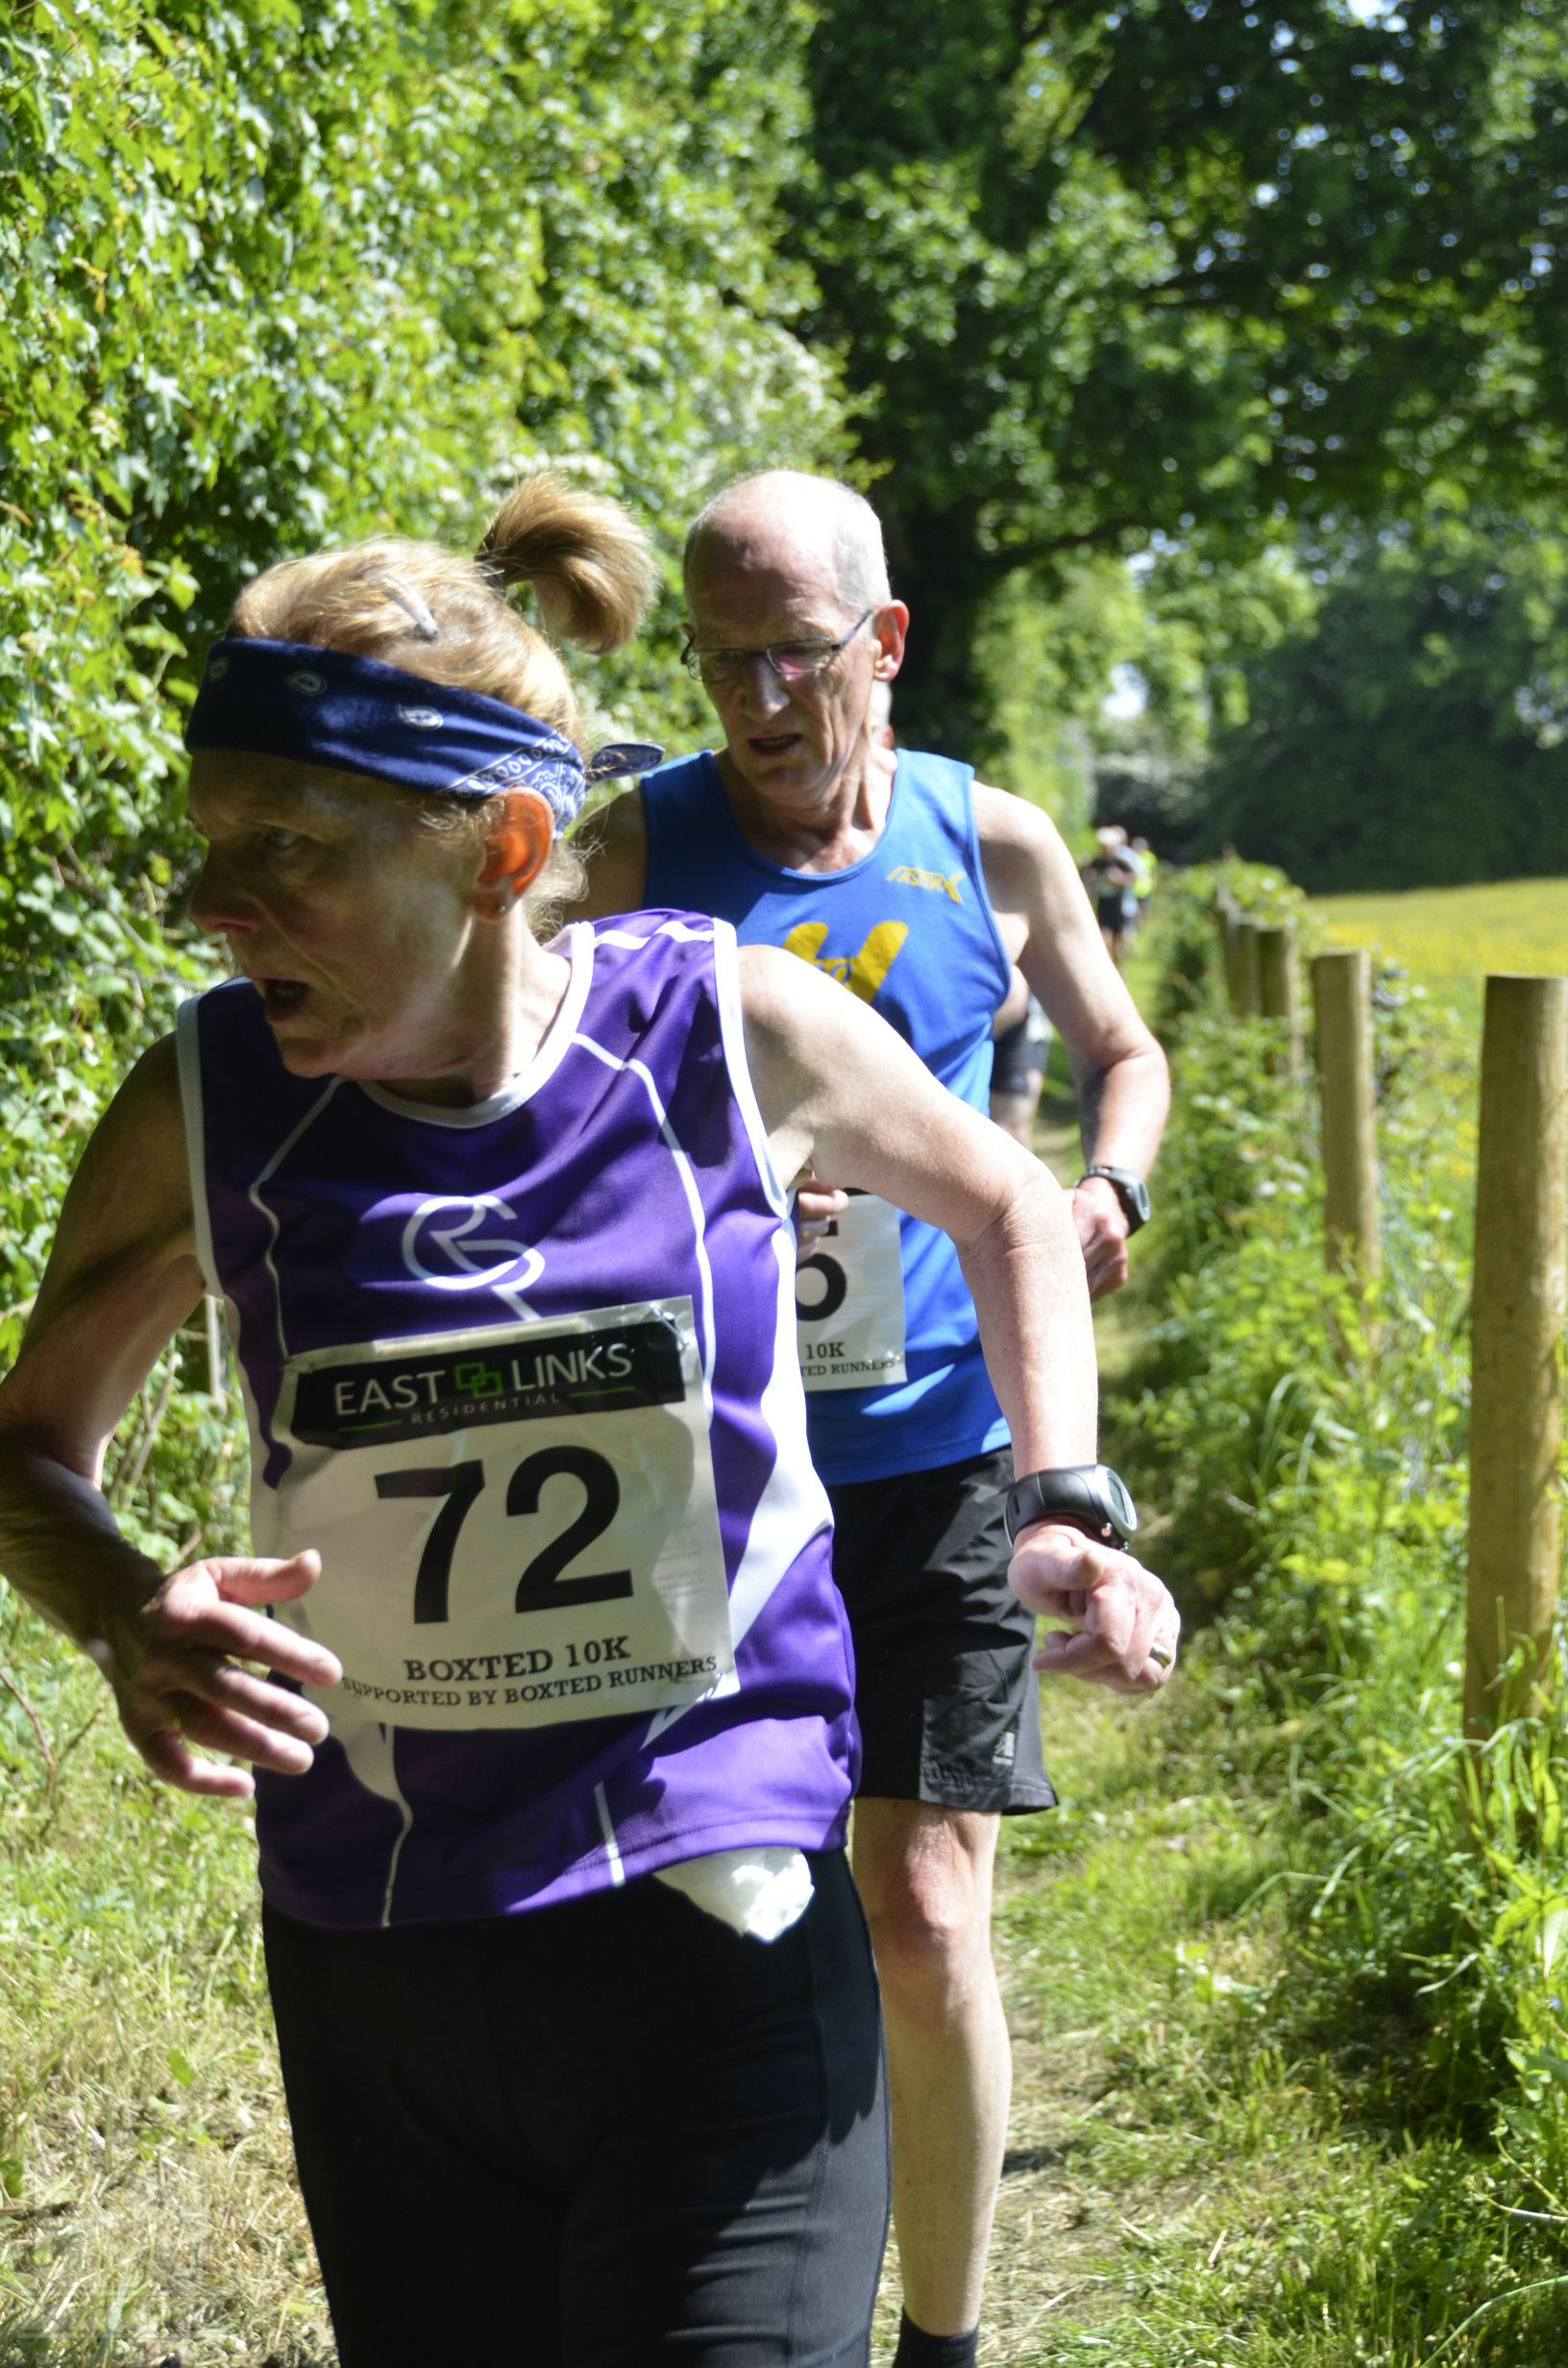 Boxted10k-00215